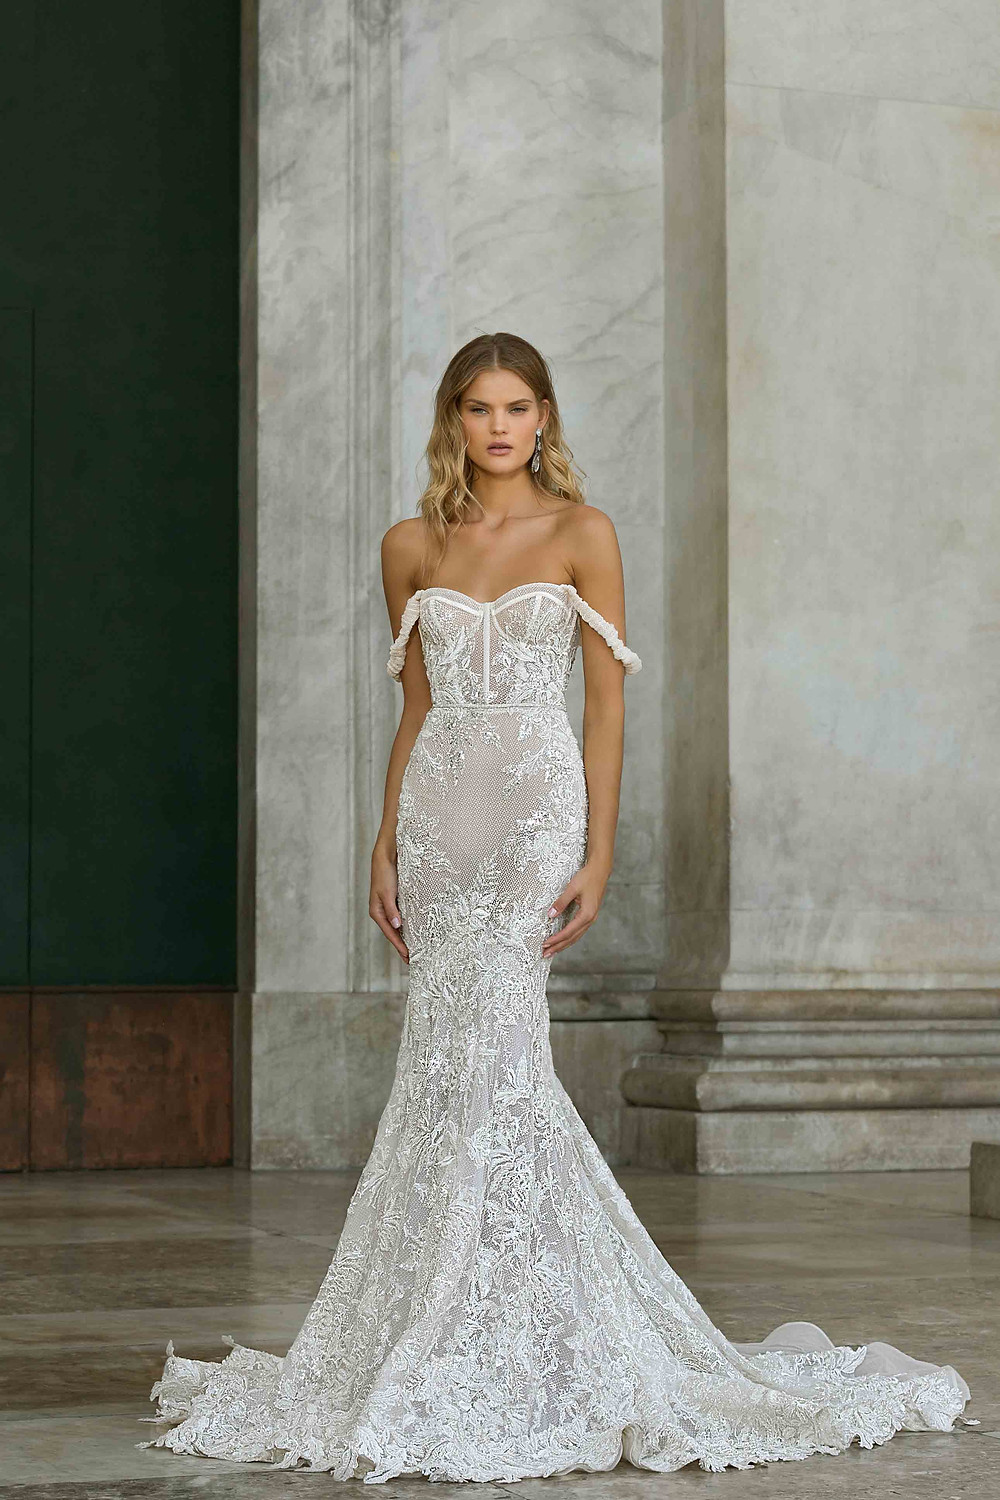 A Berta 2020 off the shoulder, corset mermaid wedding dress with lace